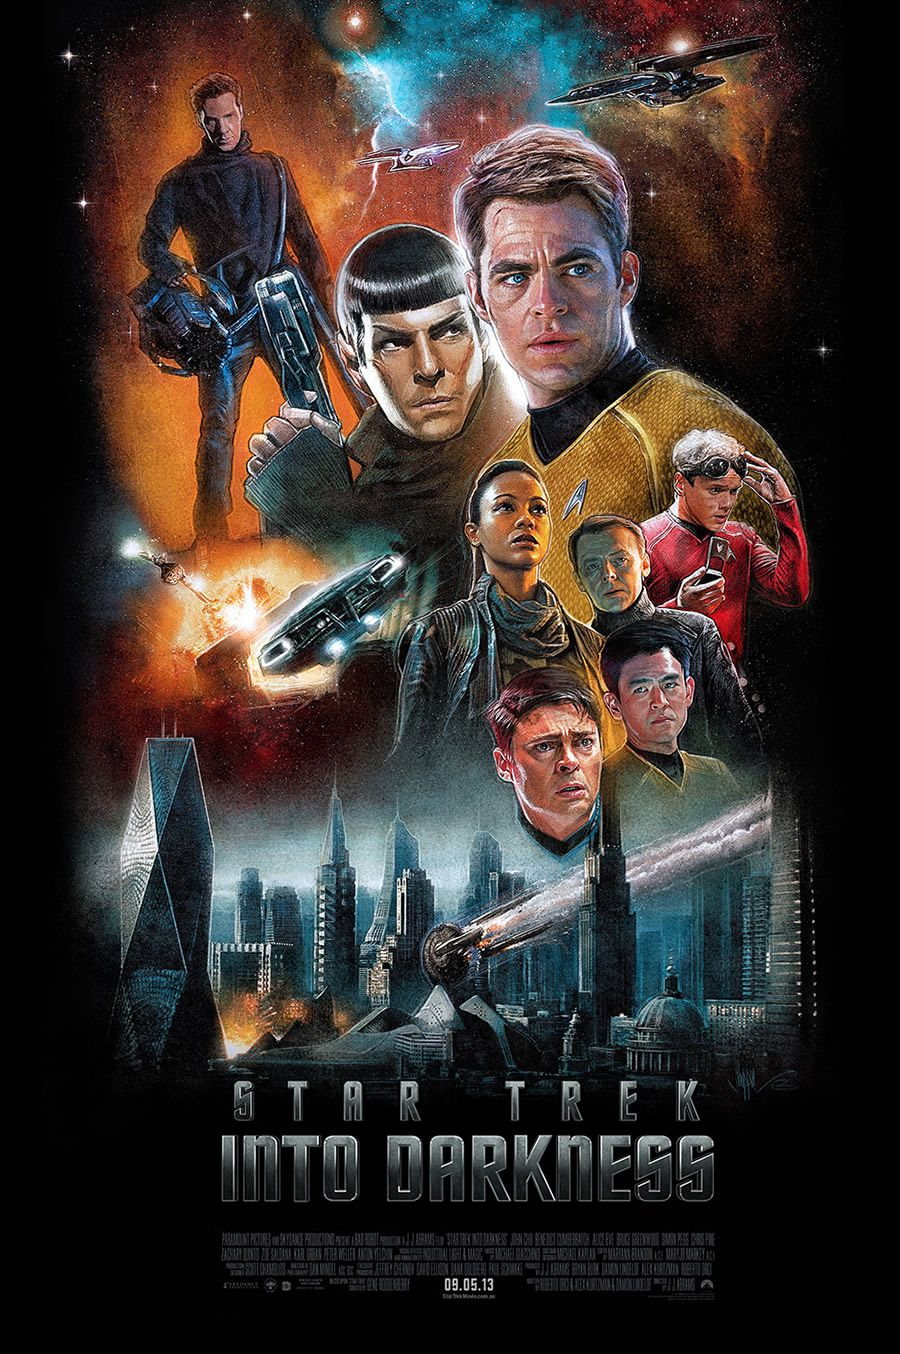 Paul shipper movie posters 6